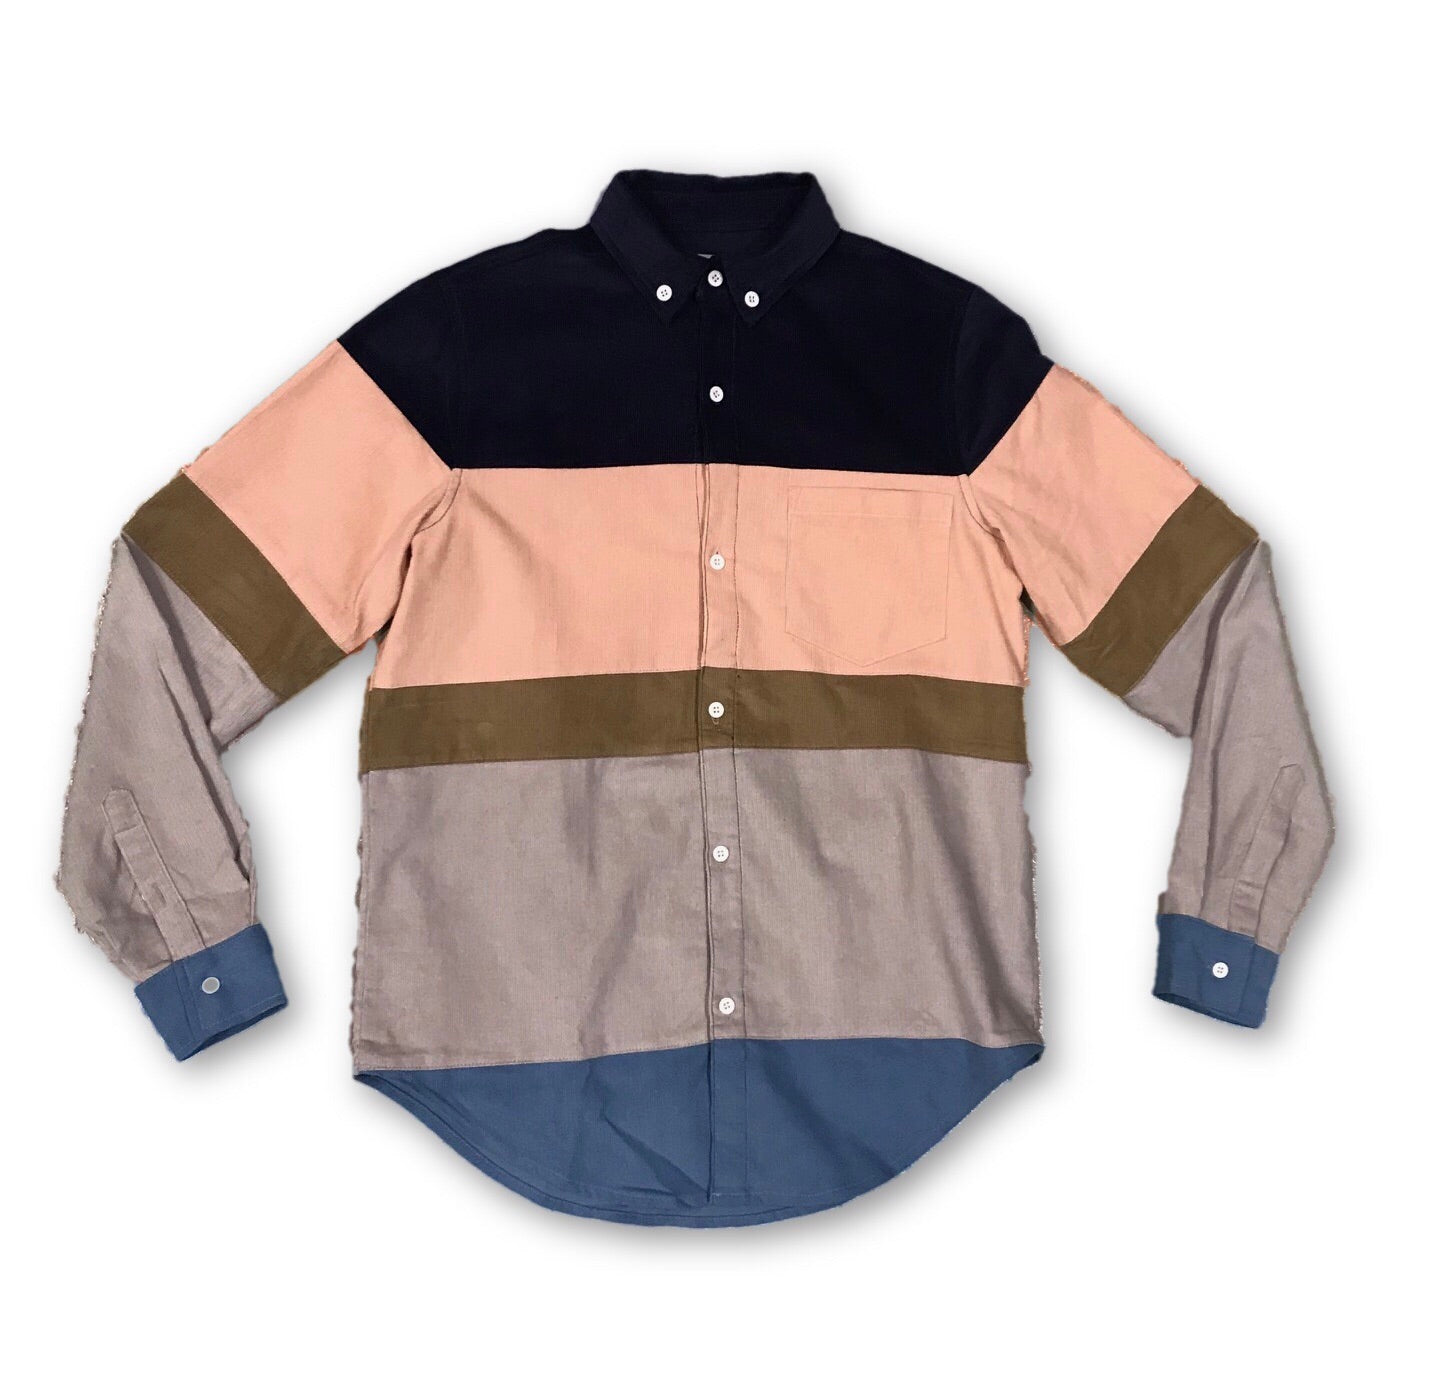 Catskill Corduroy Button Up - Multi